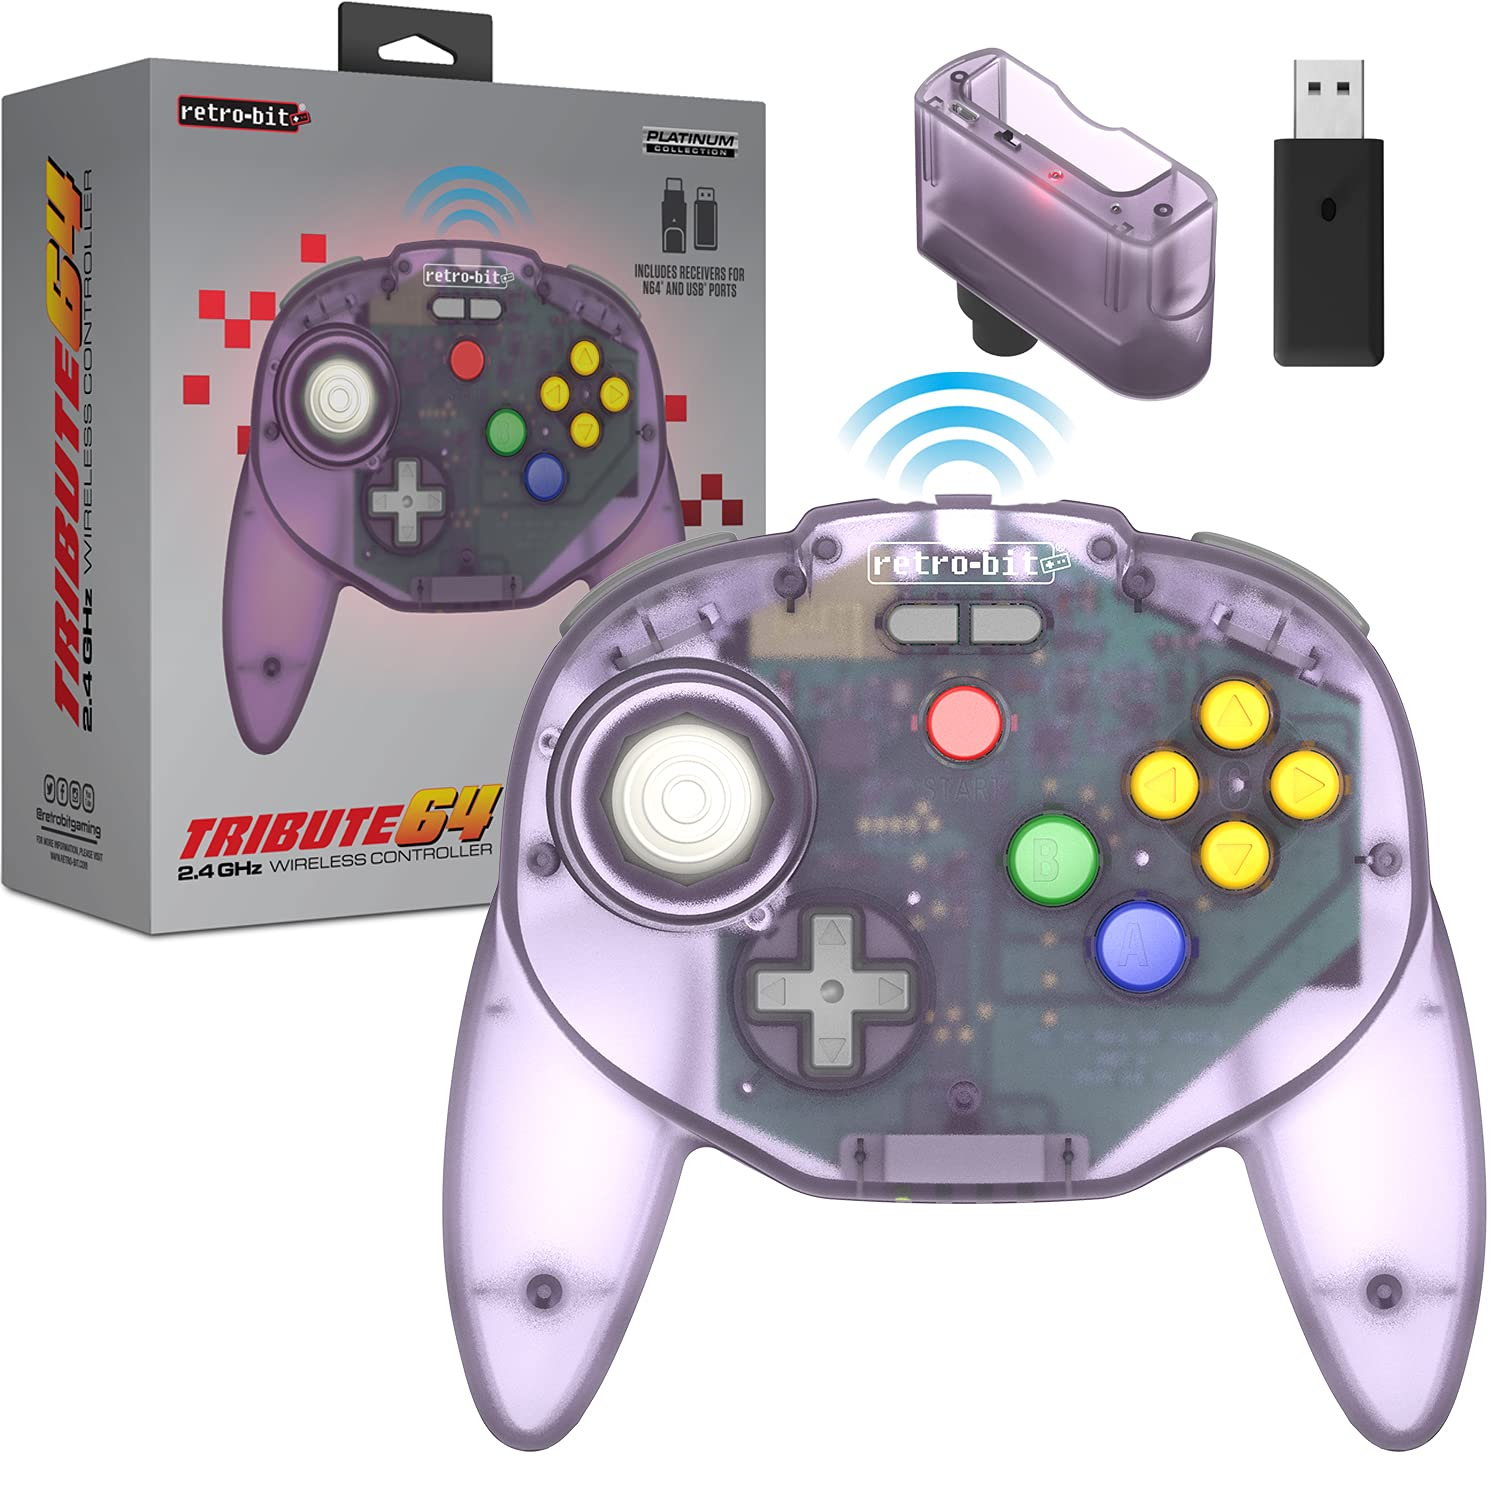 The Top 5 N64 Controllers of 2021